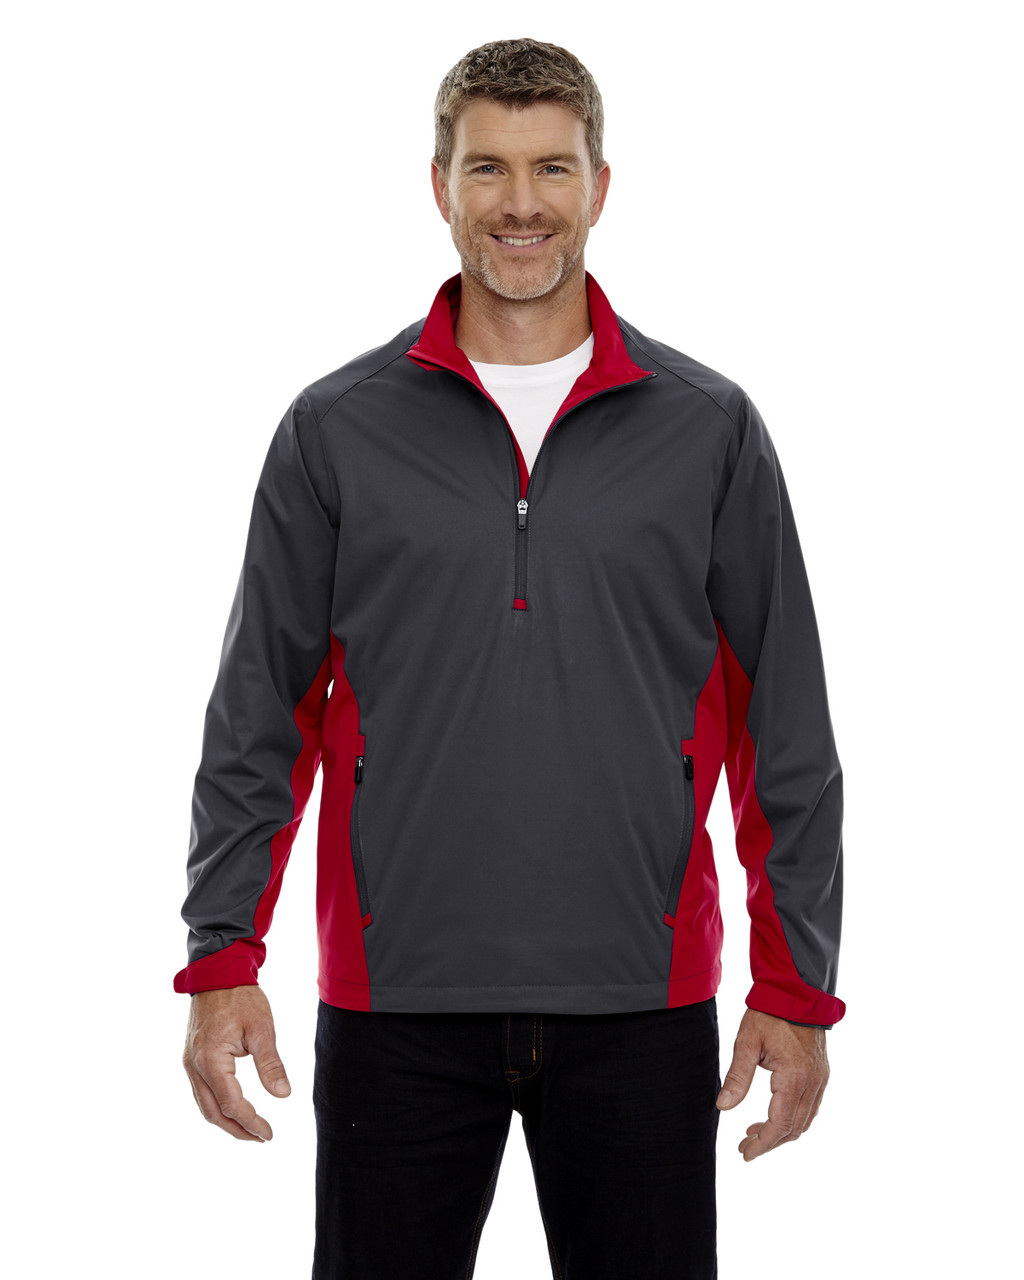 Black Silk - 88656 North End Sport Red Laminated Performance Stretch Wind Shirt